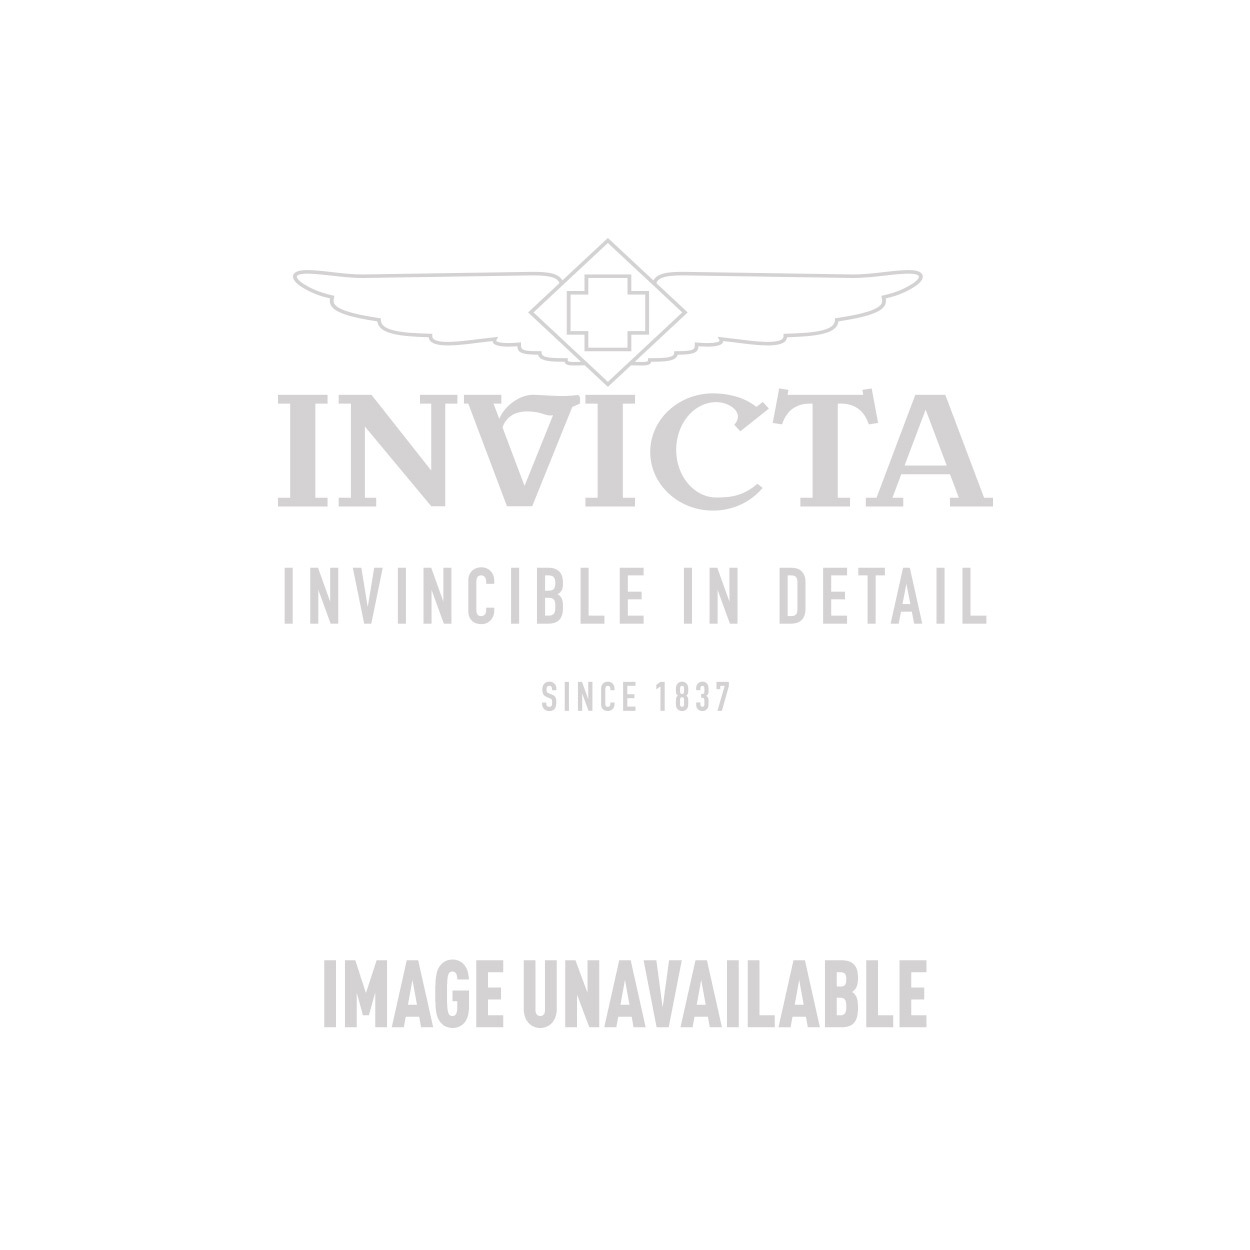 Invicta Reserve Swiss Made Quartz Watch - Gold, Gunmetal case with Gold, Gunmetal tone Stainless Steel band - Model 12983